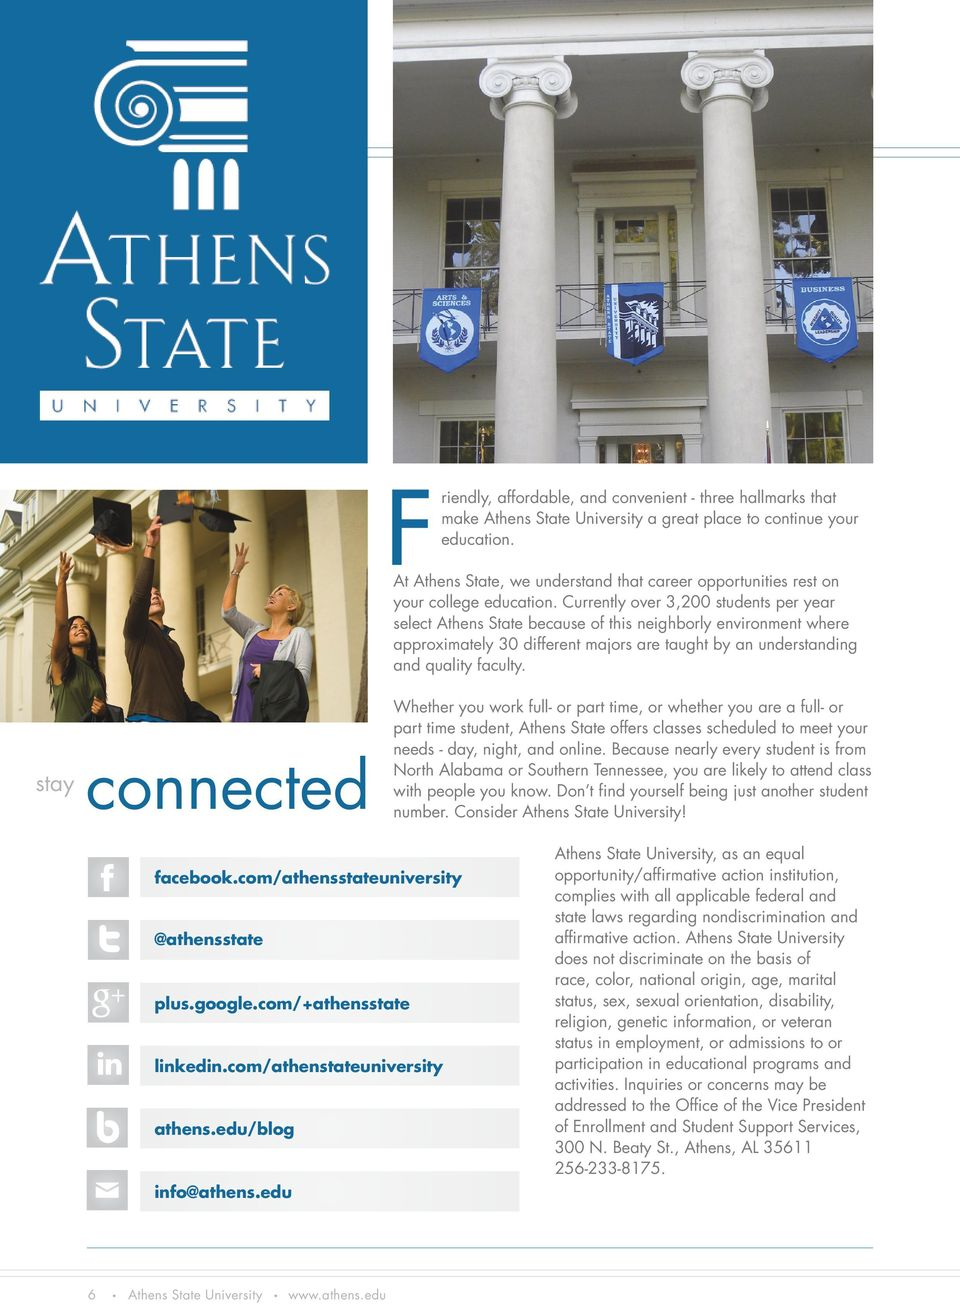 Currently over 3,200 students per year select Athens State because of this neighborly environment where approximately 30 different majors are taught by an understanding and quality faculty.